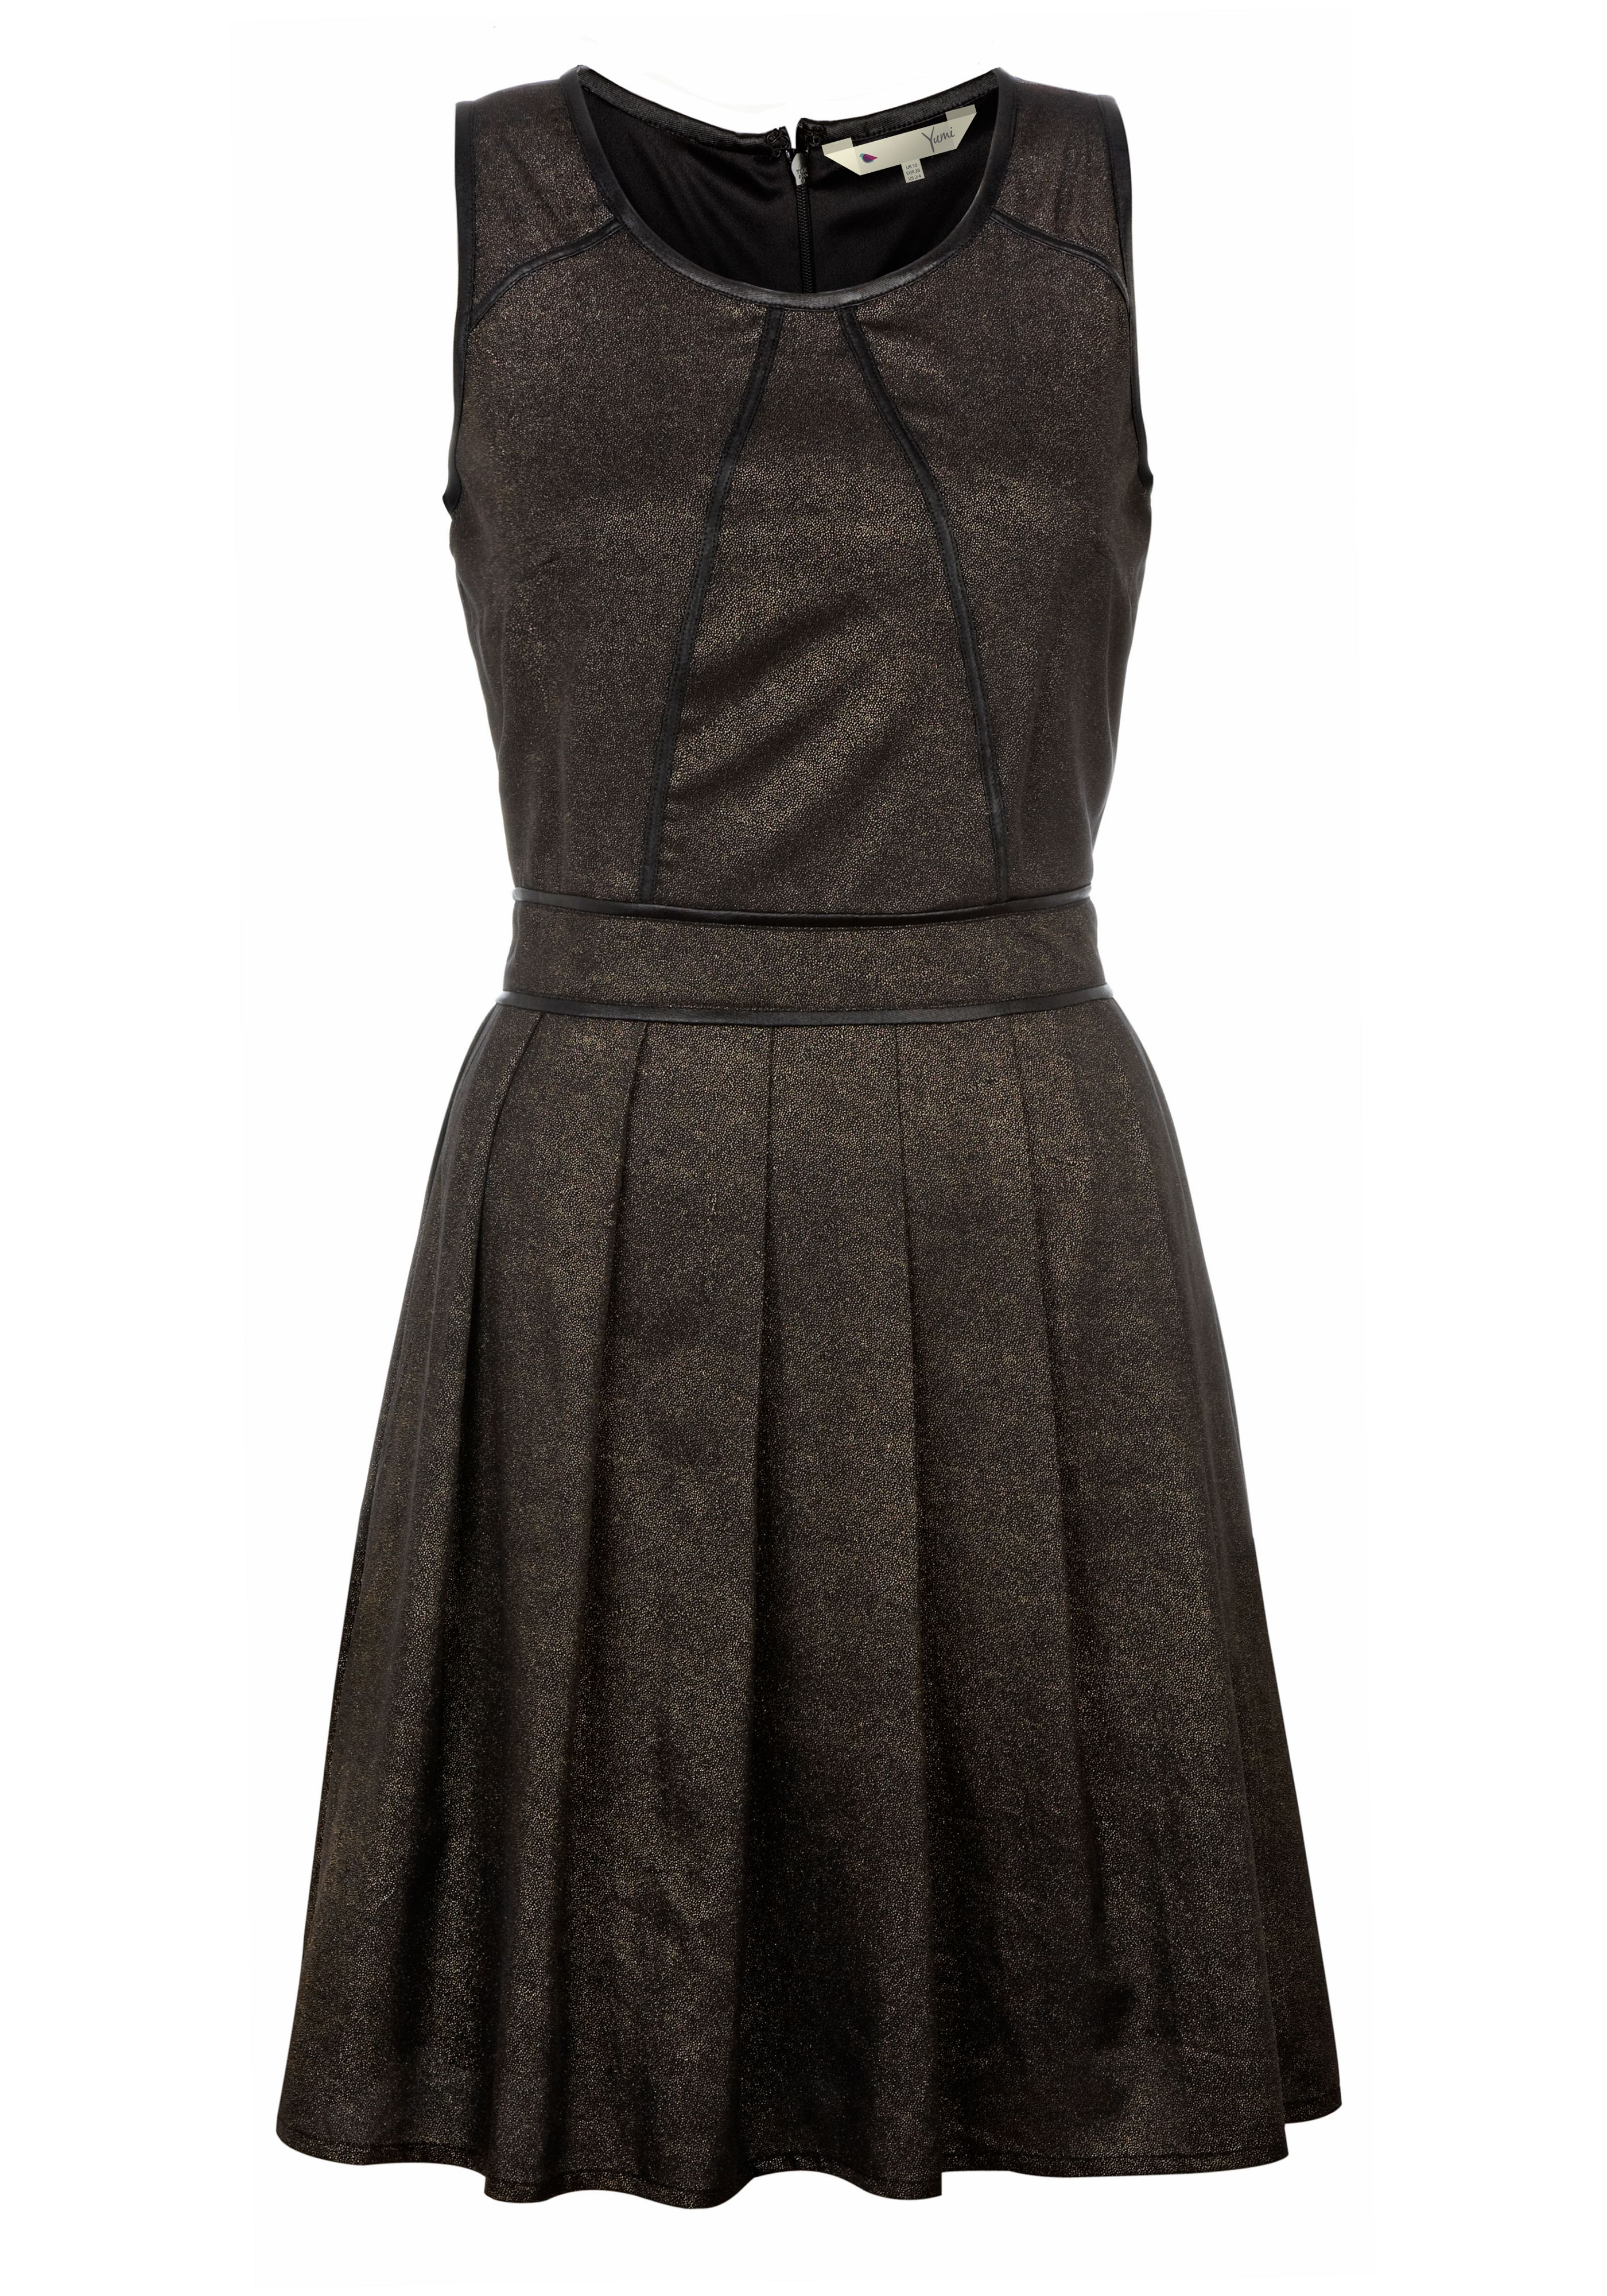 Metalic skater dress